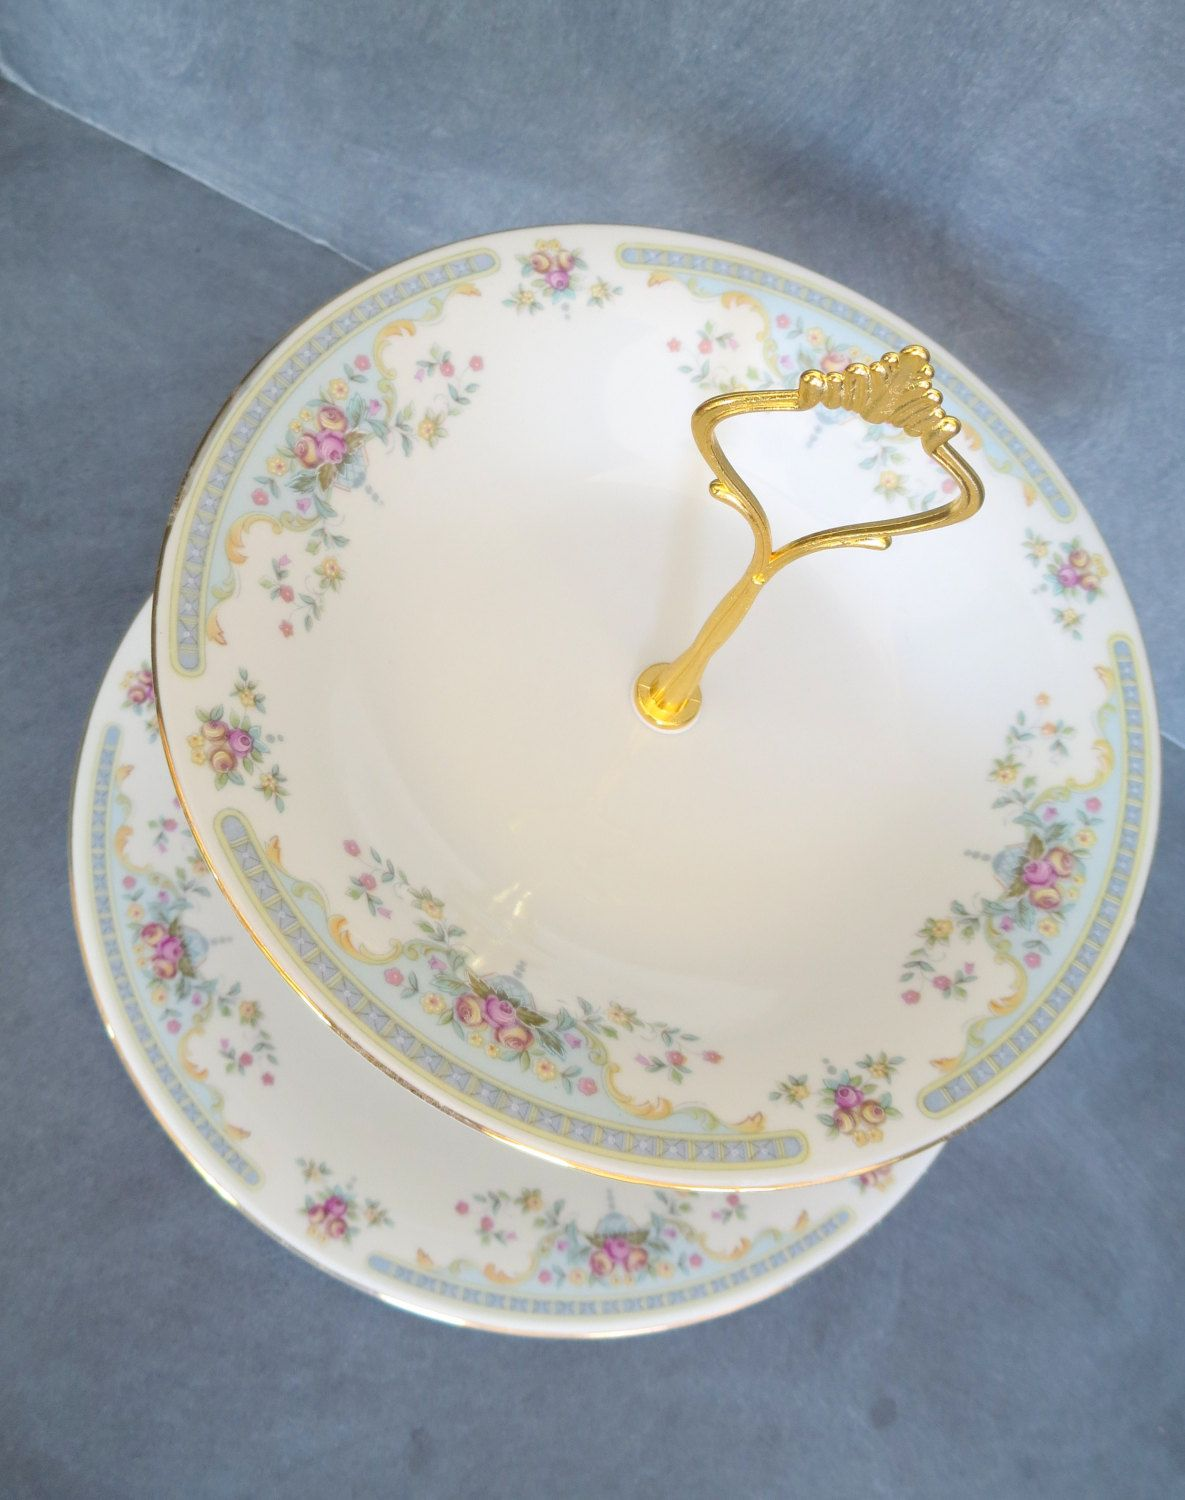 New to DancingDishAndDecor on Etsy 2 Tier Cake Plate Bridal Plate Stand Wedding Tableware | Winley China Pink Blue Gold Accents u0026 Gold Hardware (Item# ... & 2 Tier Cake Plate Bridal Plate Stand Wedding Tableware | Winley ...